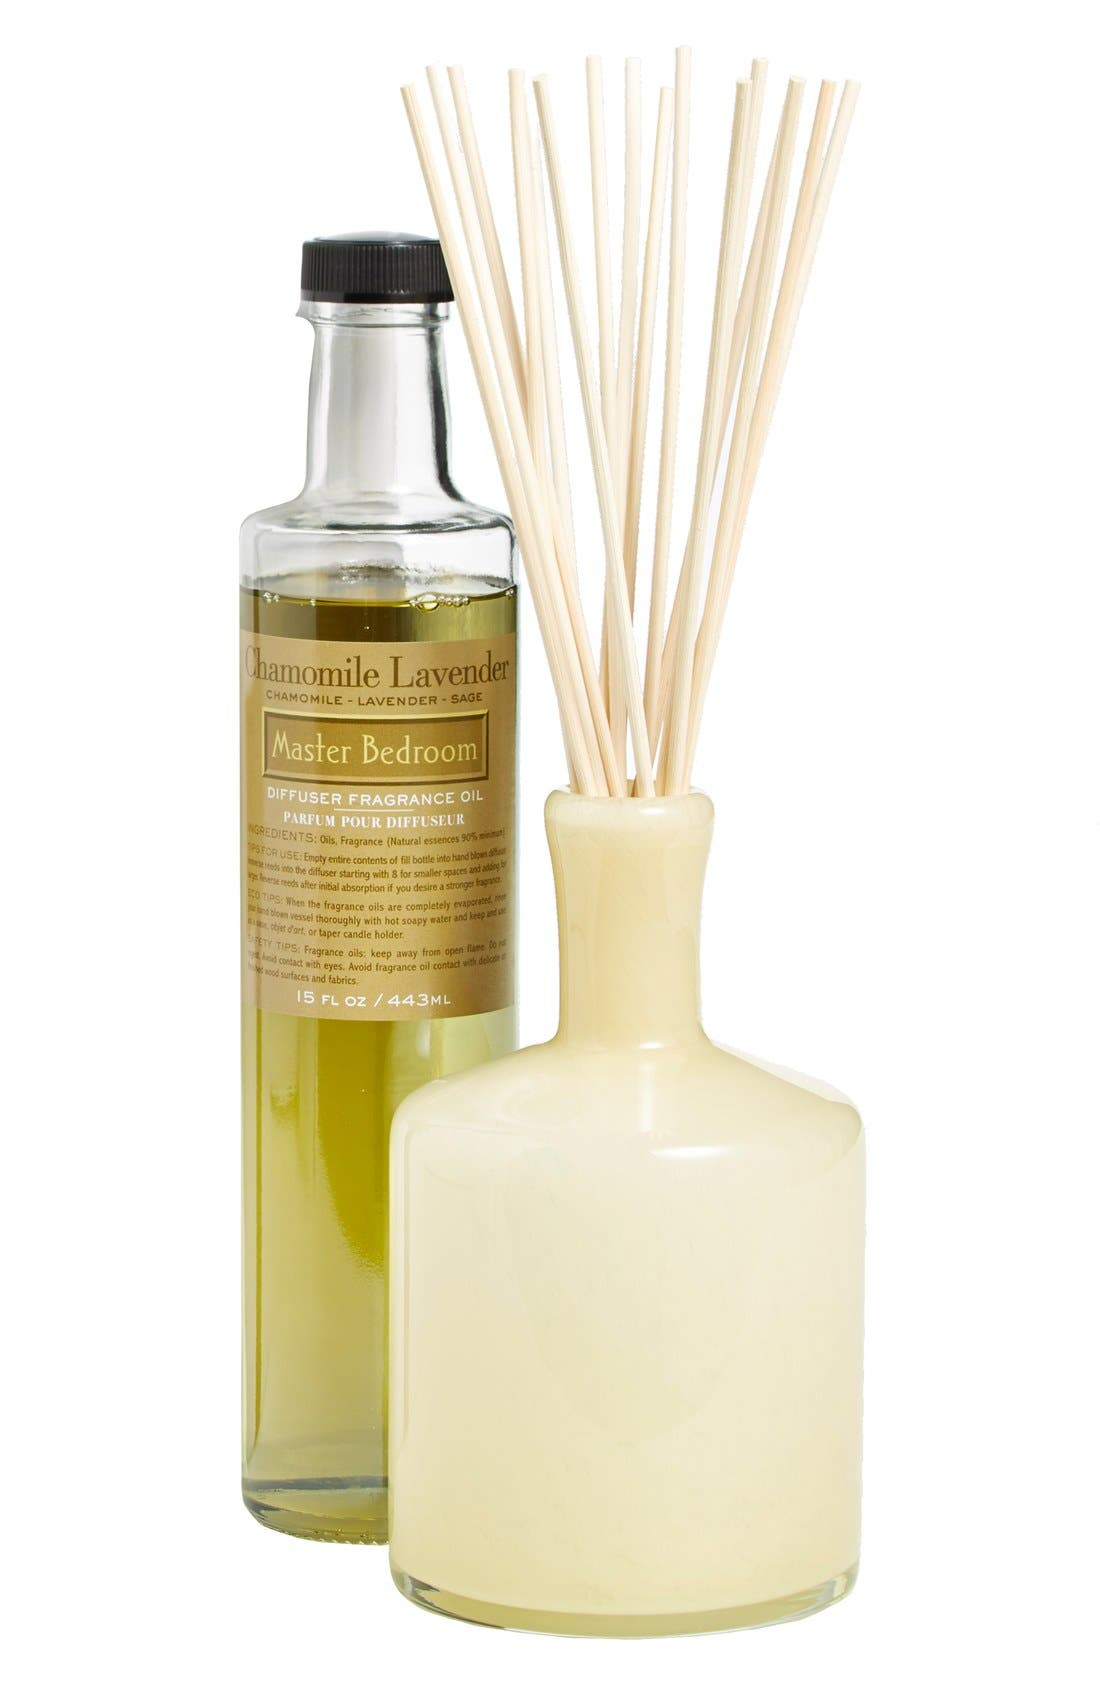 'Chamomile Lavender - Master Bedroom' Fragrance Diffuser,                         Main,                         color, No Color